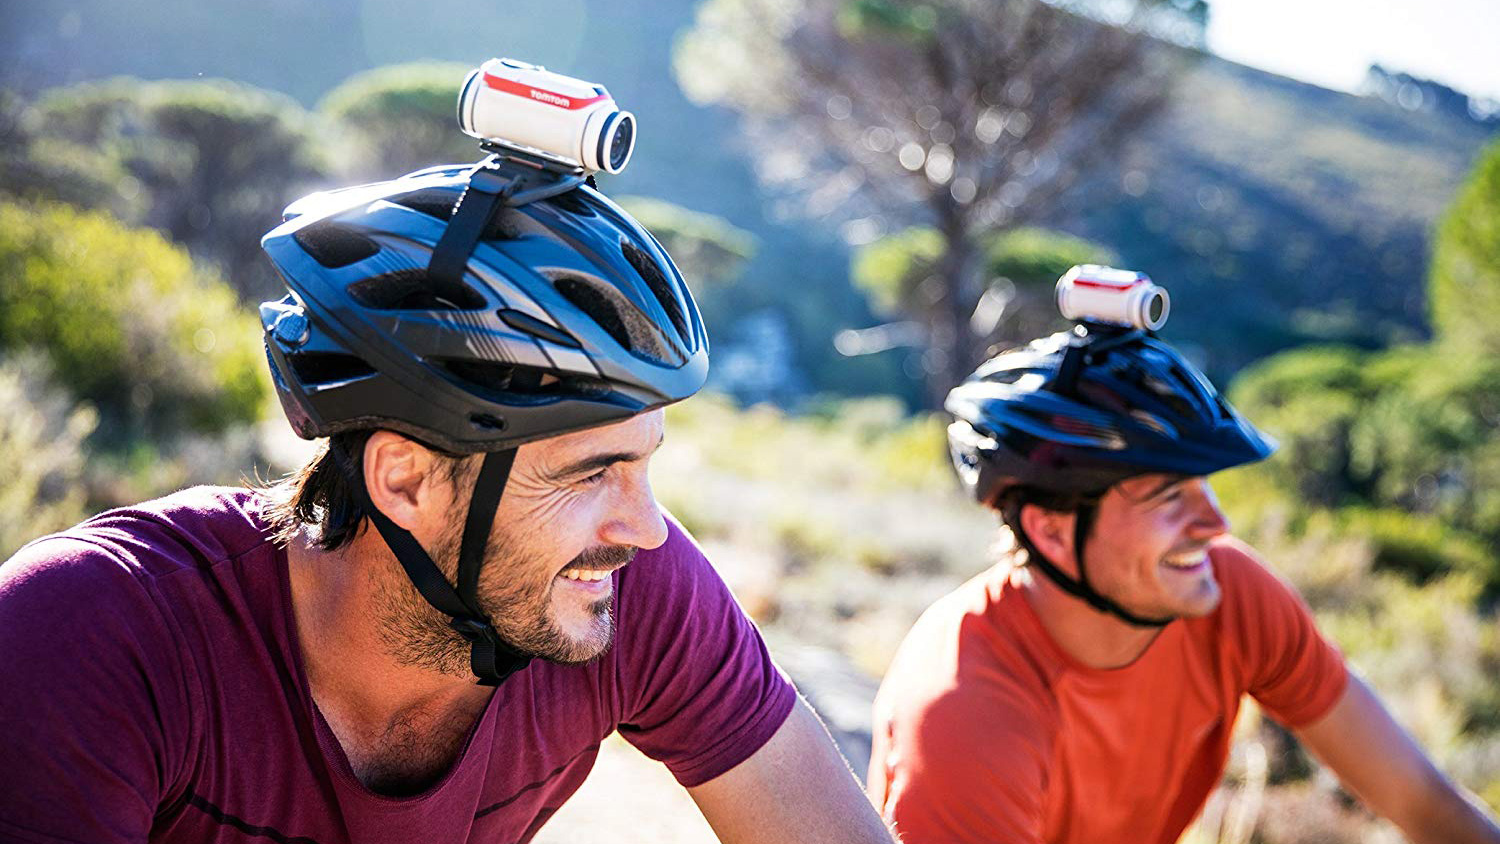 The best helmet camera for motorcycles, cycling and adrenaline junkies | Digital Camera World